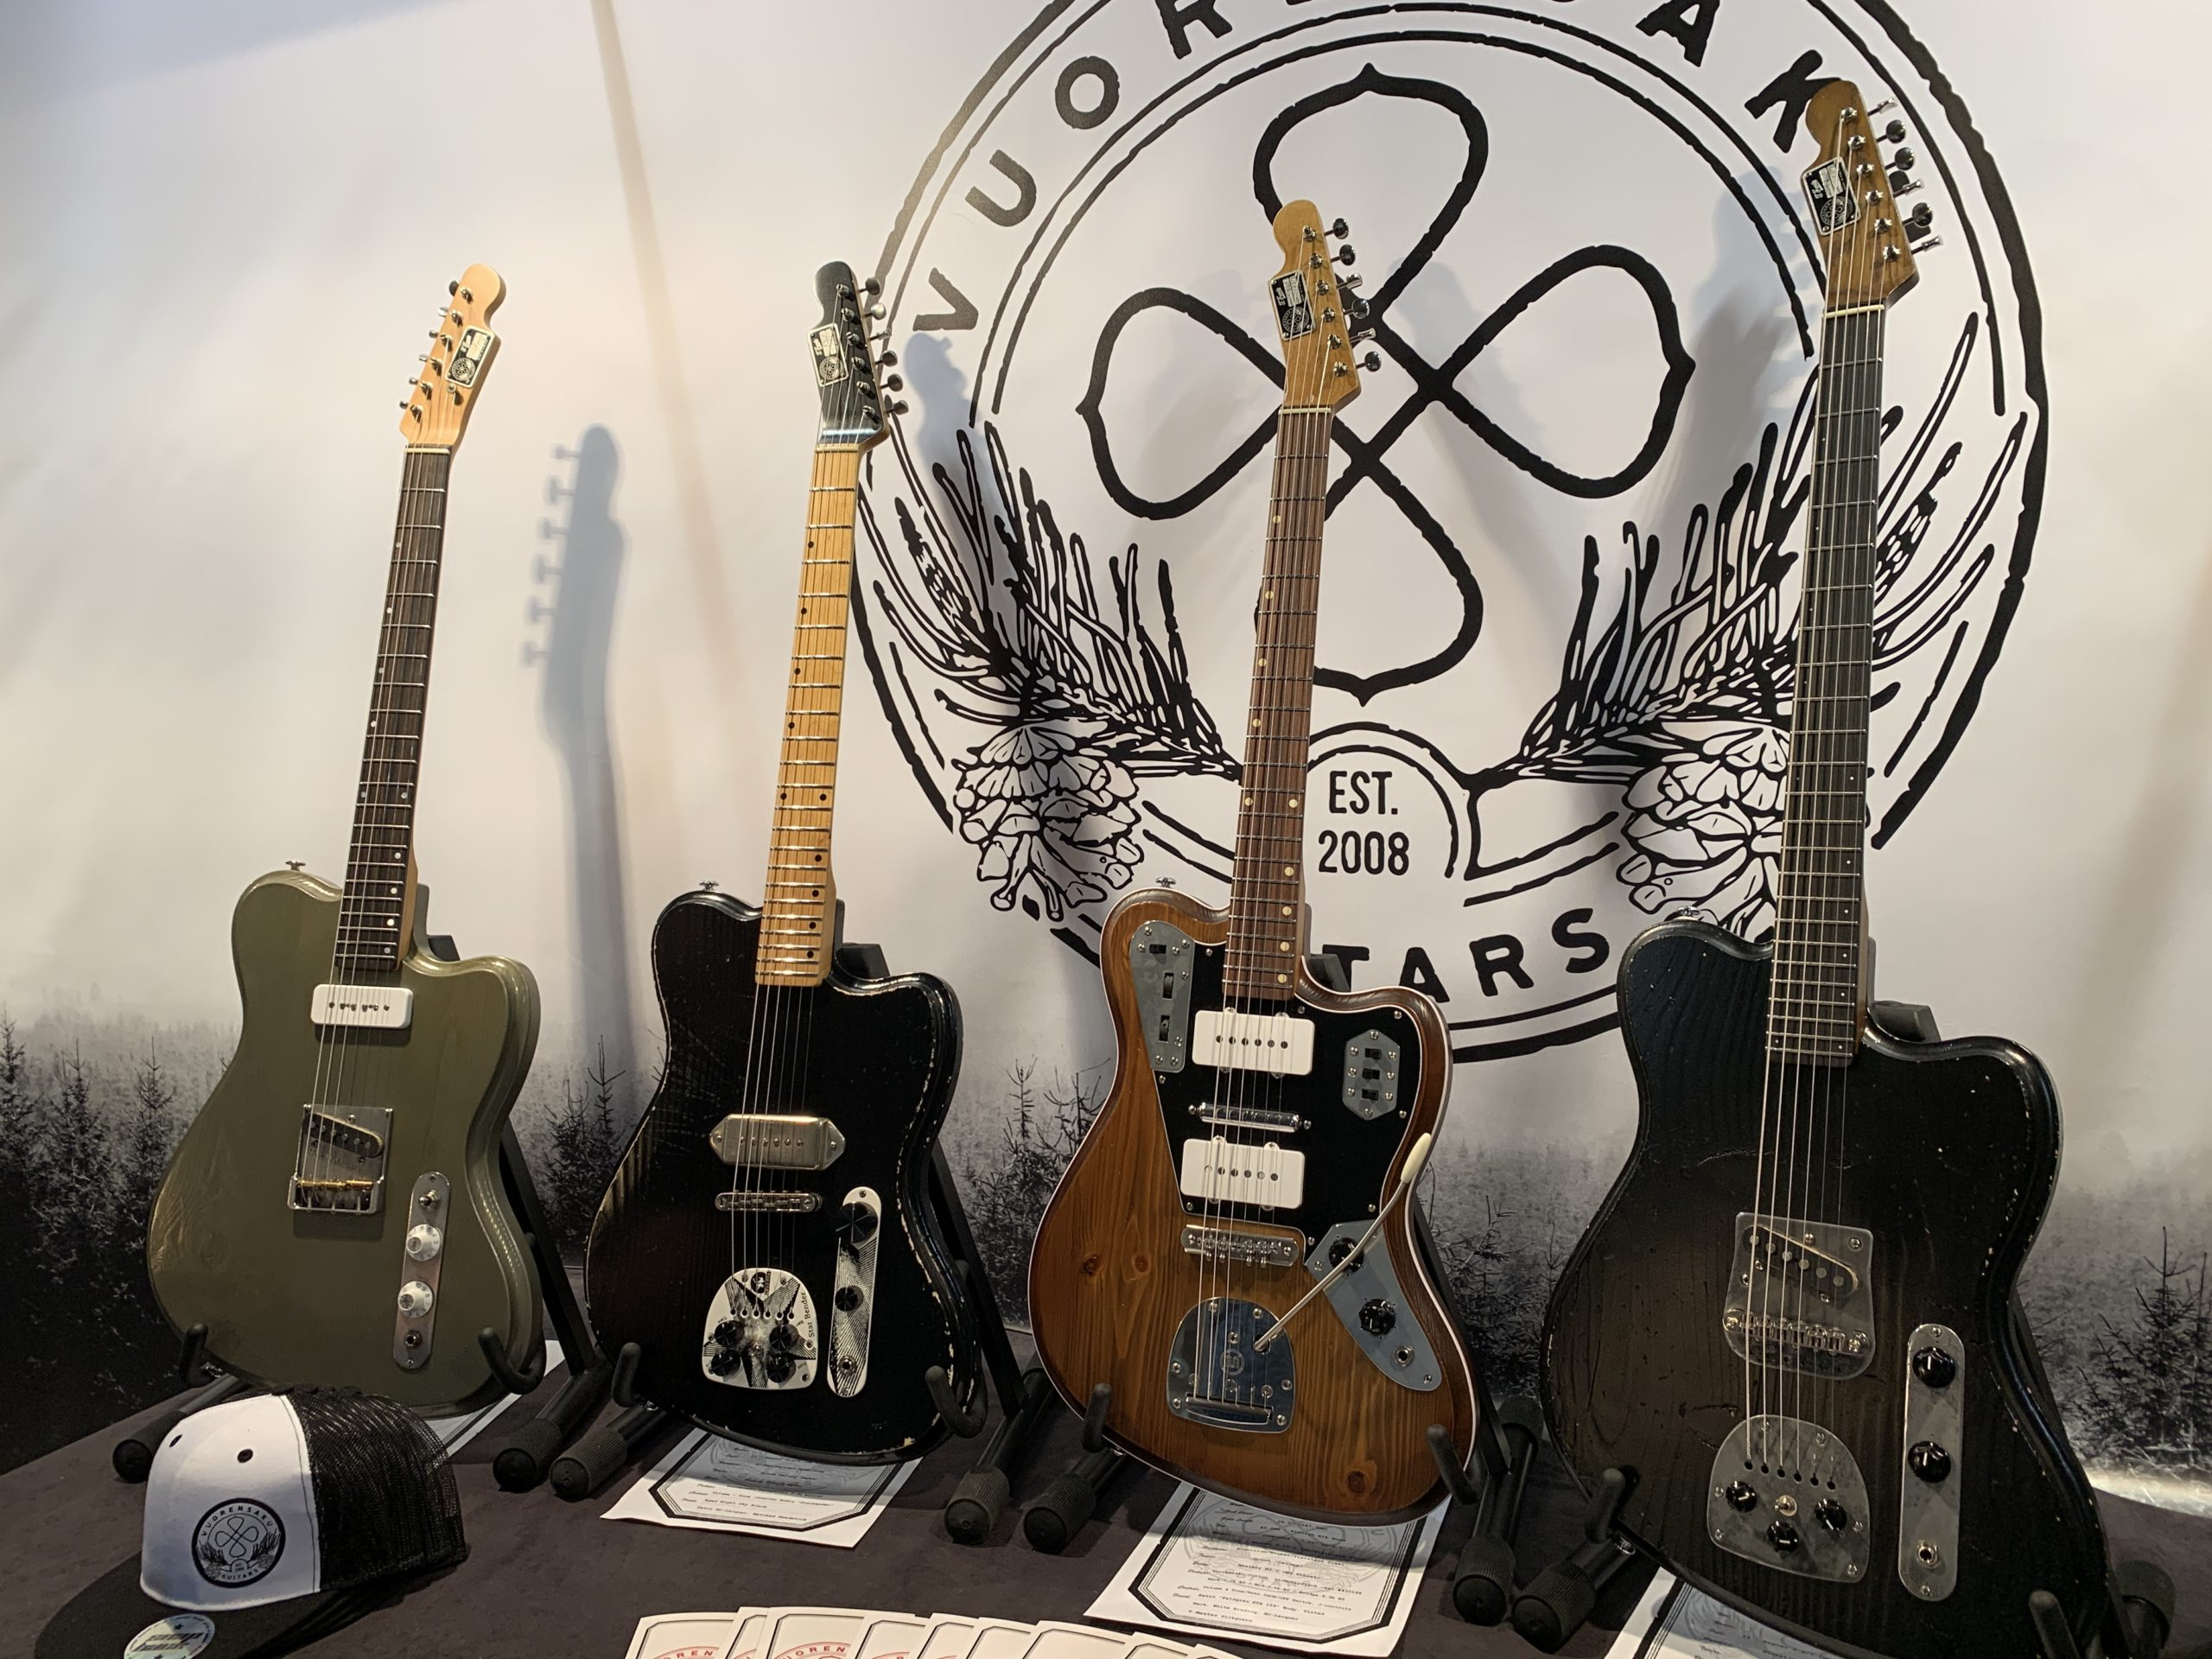 Saku Vuori luthier interview at the 2019 Guitar Summit with some cool offset guitars